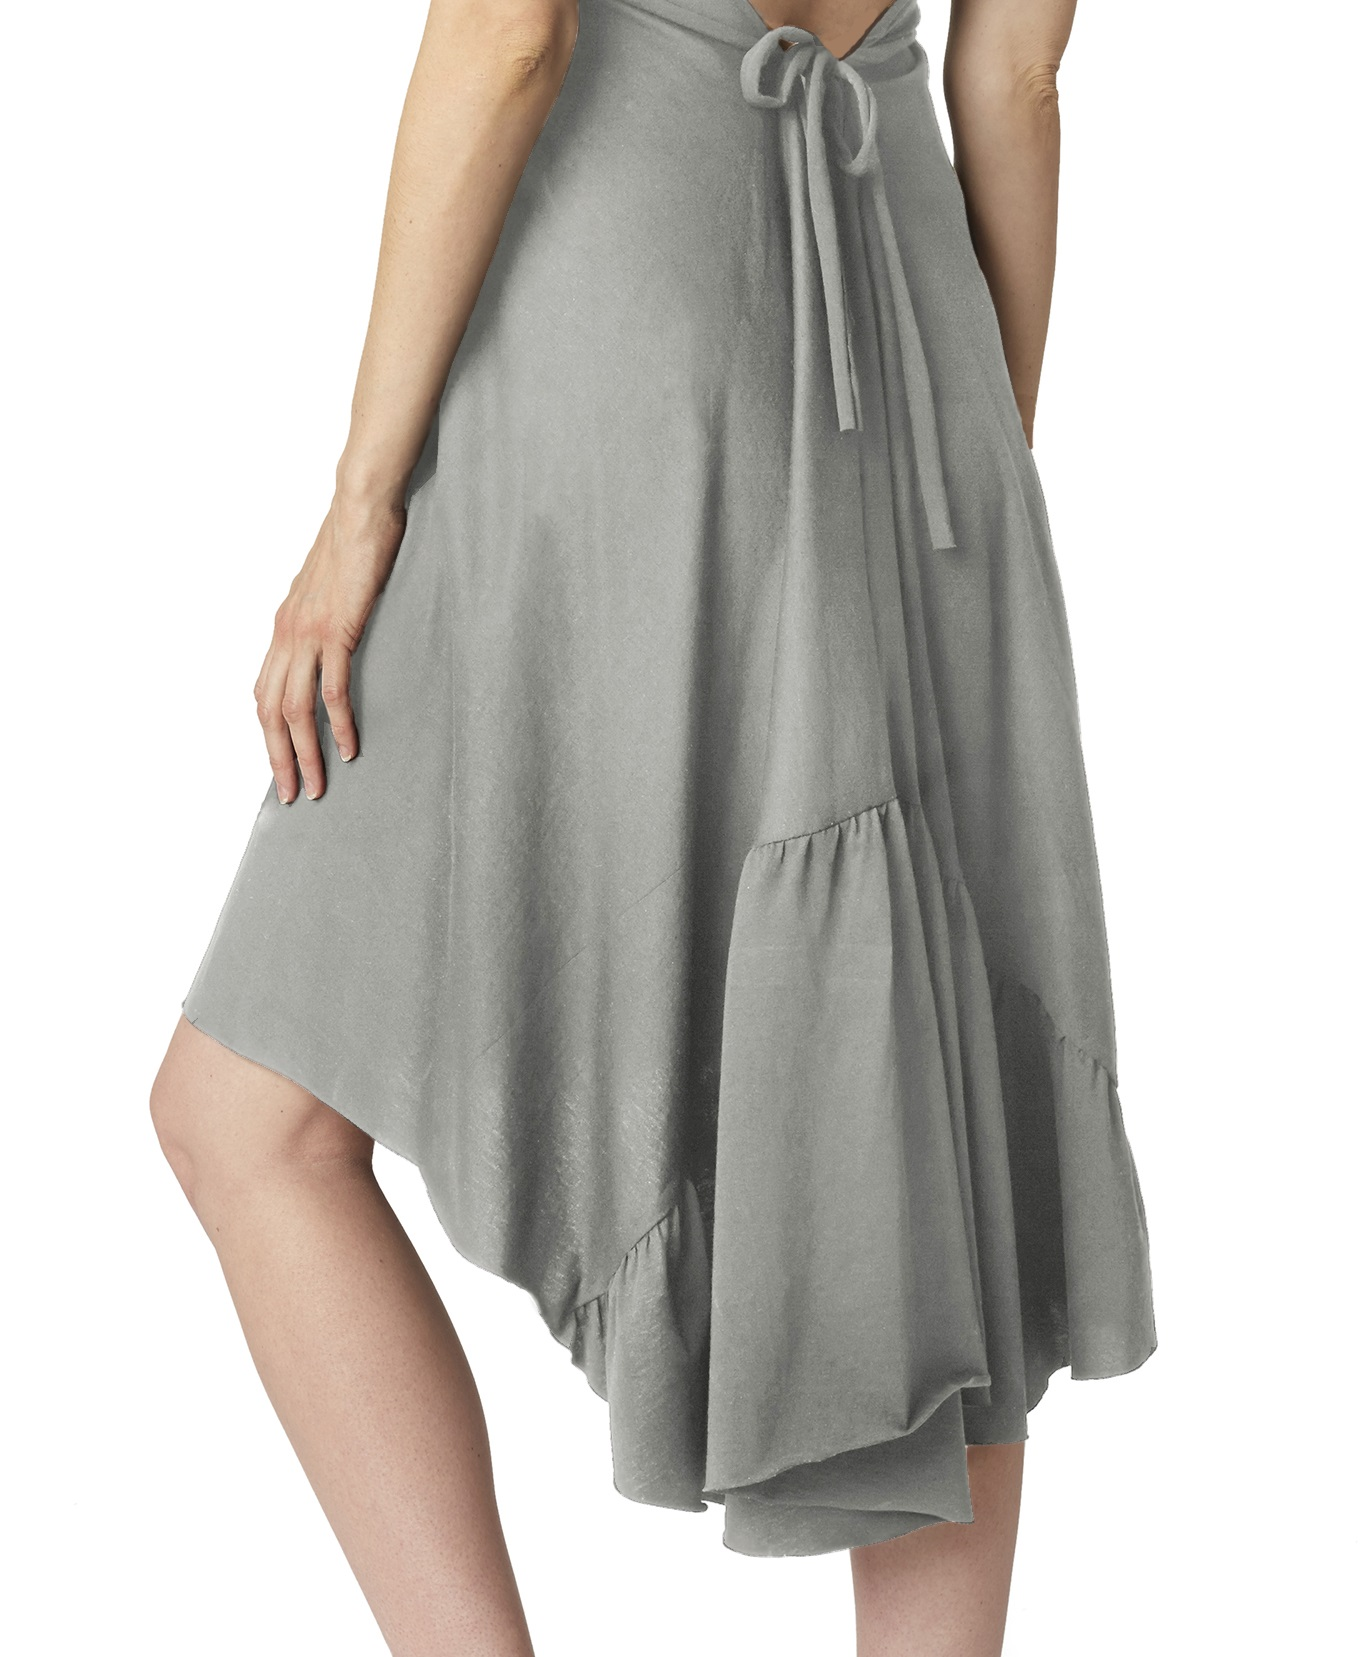 pretty-pushers-ruffle-labor-gown-moonlight-grey-back-tie-2